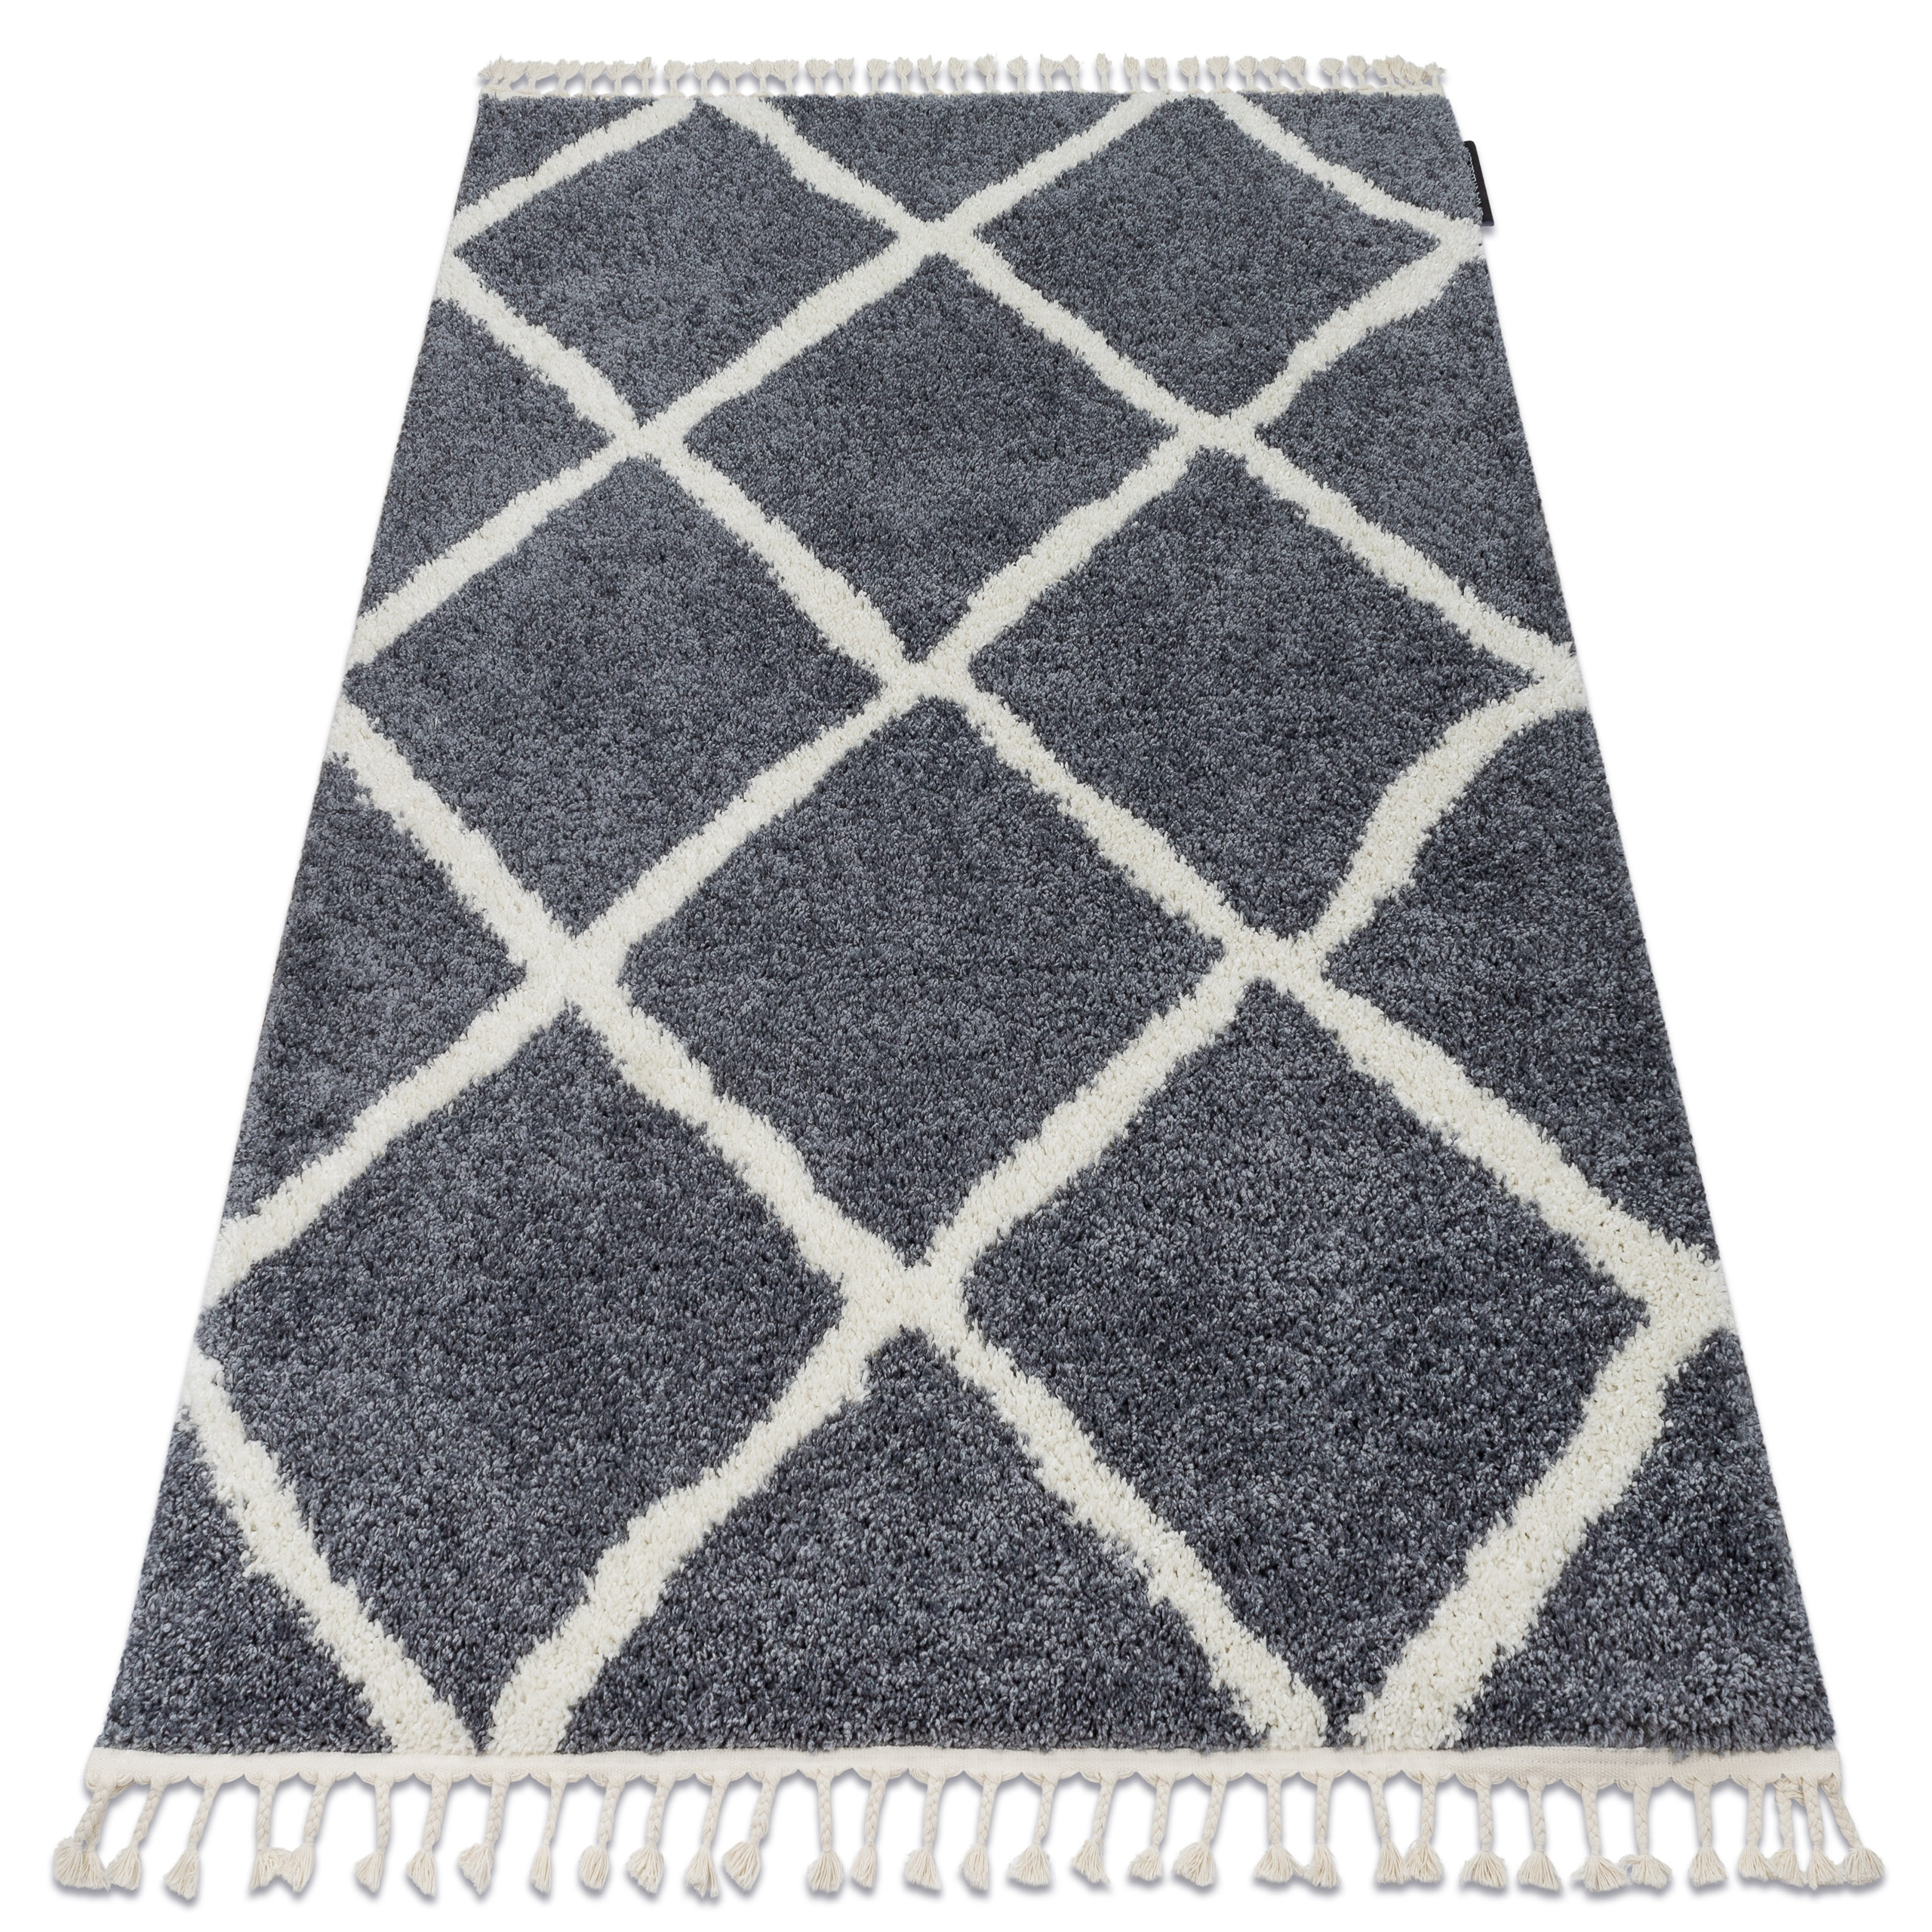 Picture of: Amazing Modern Shaggy Rugs Berber Cross Grey White Etno Oriental Best Quality Ebay